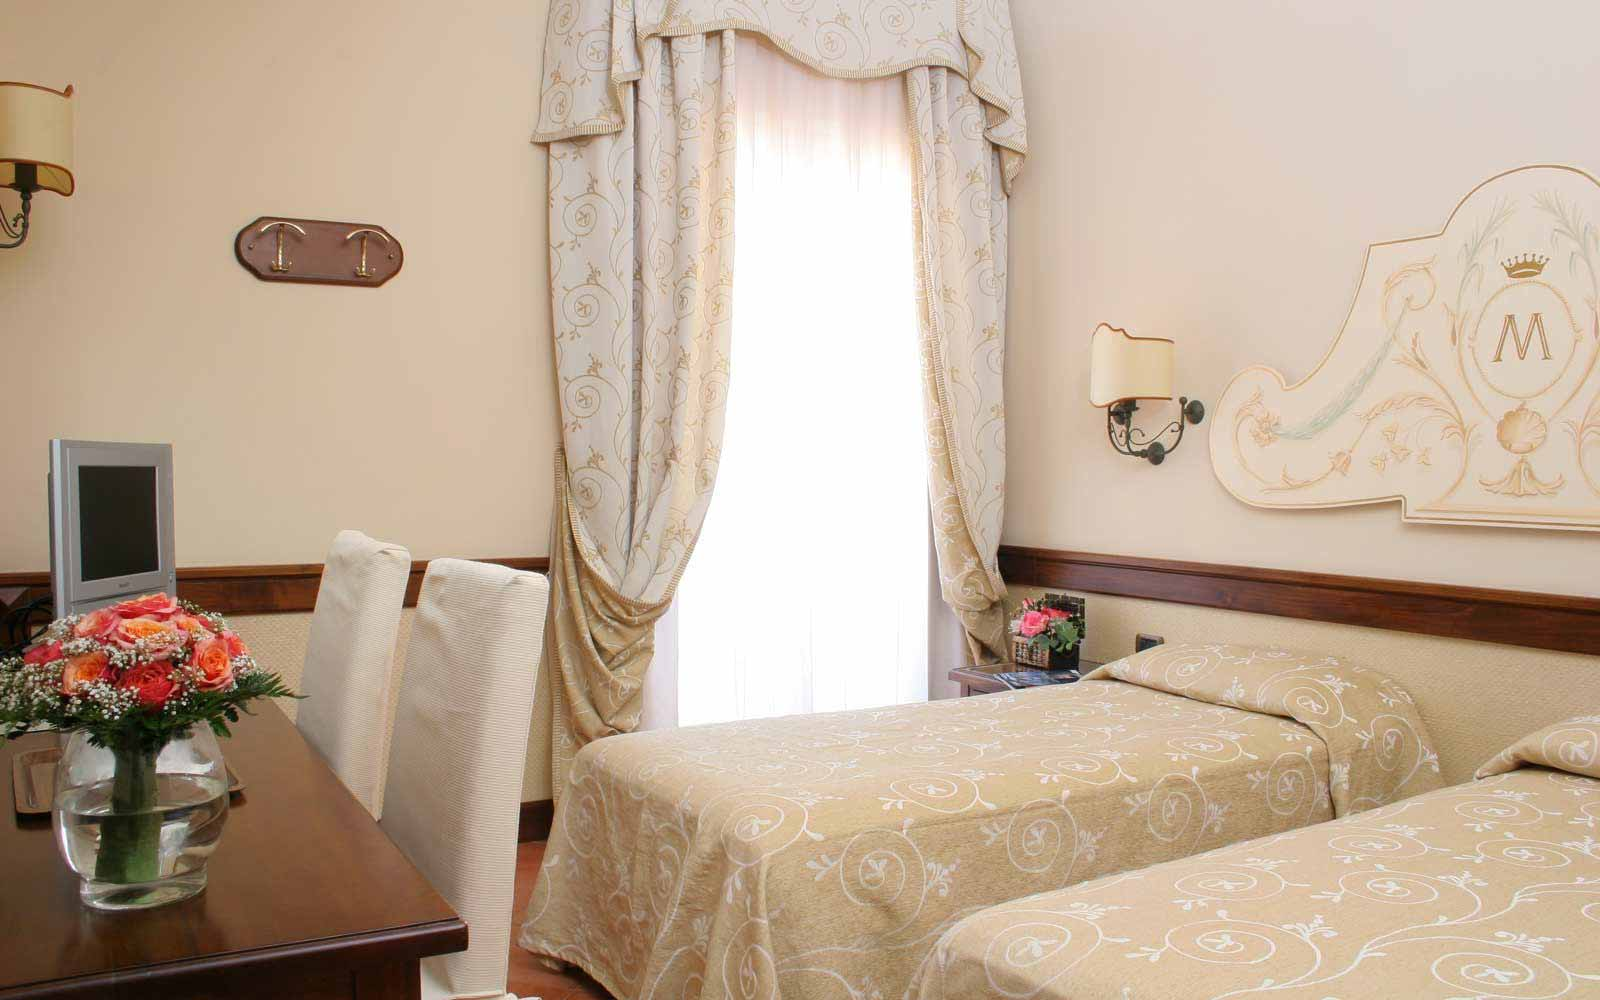 Standard room at Hotel Michelangelo